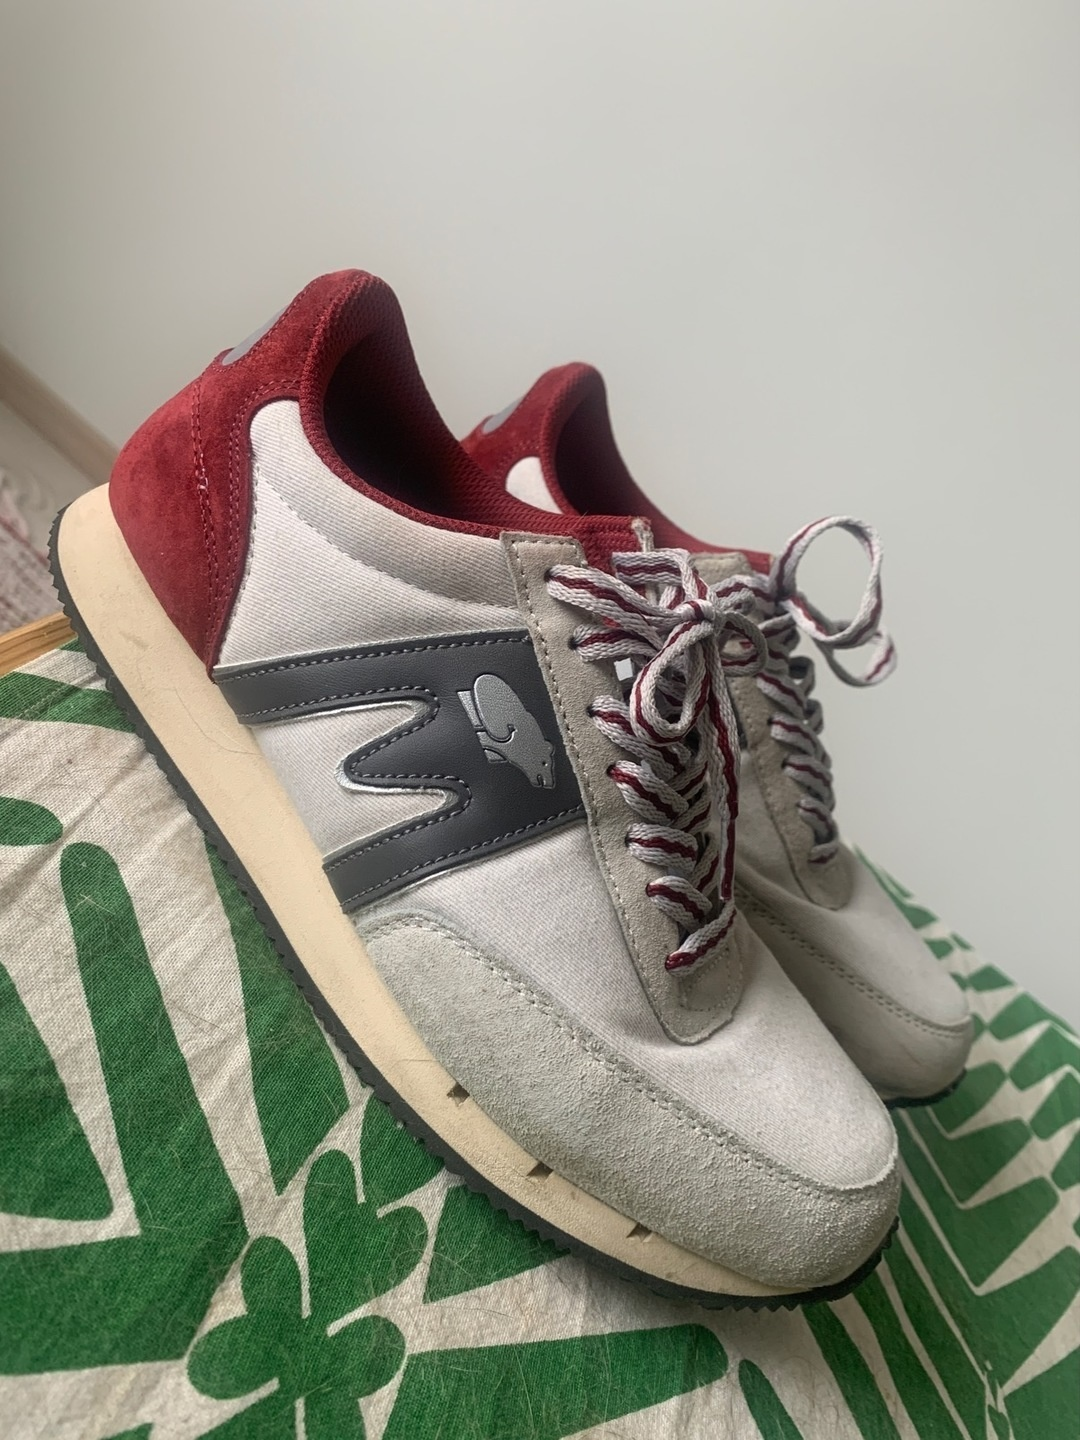 Women's sneakers - KARHU photo 1